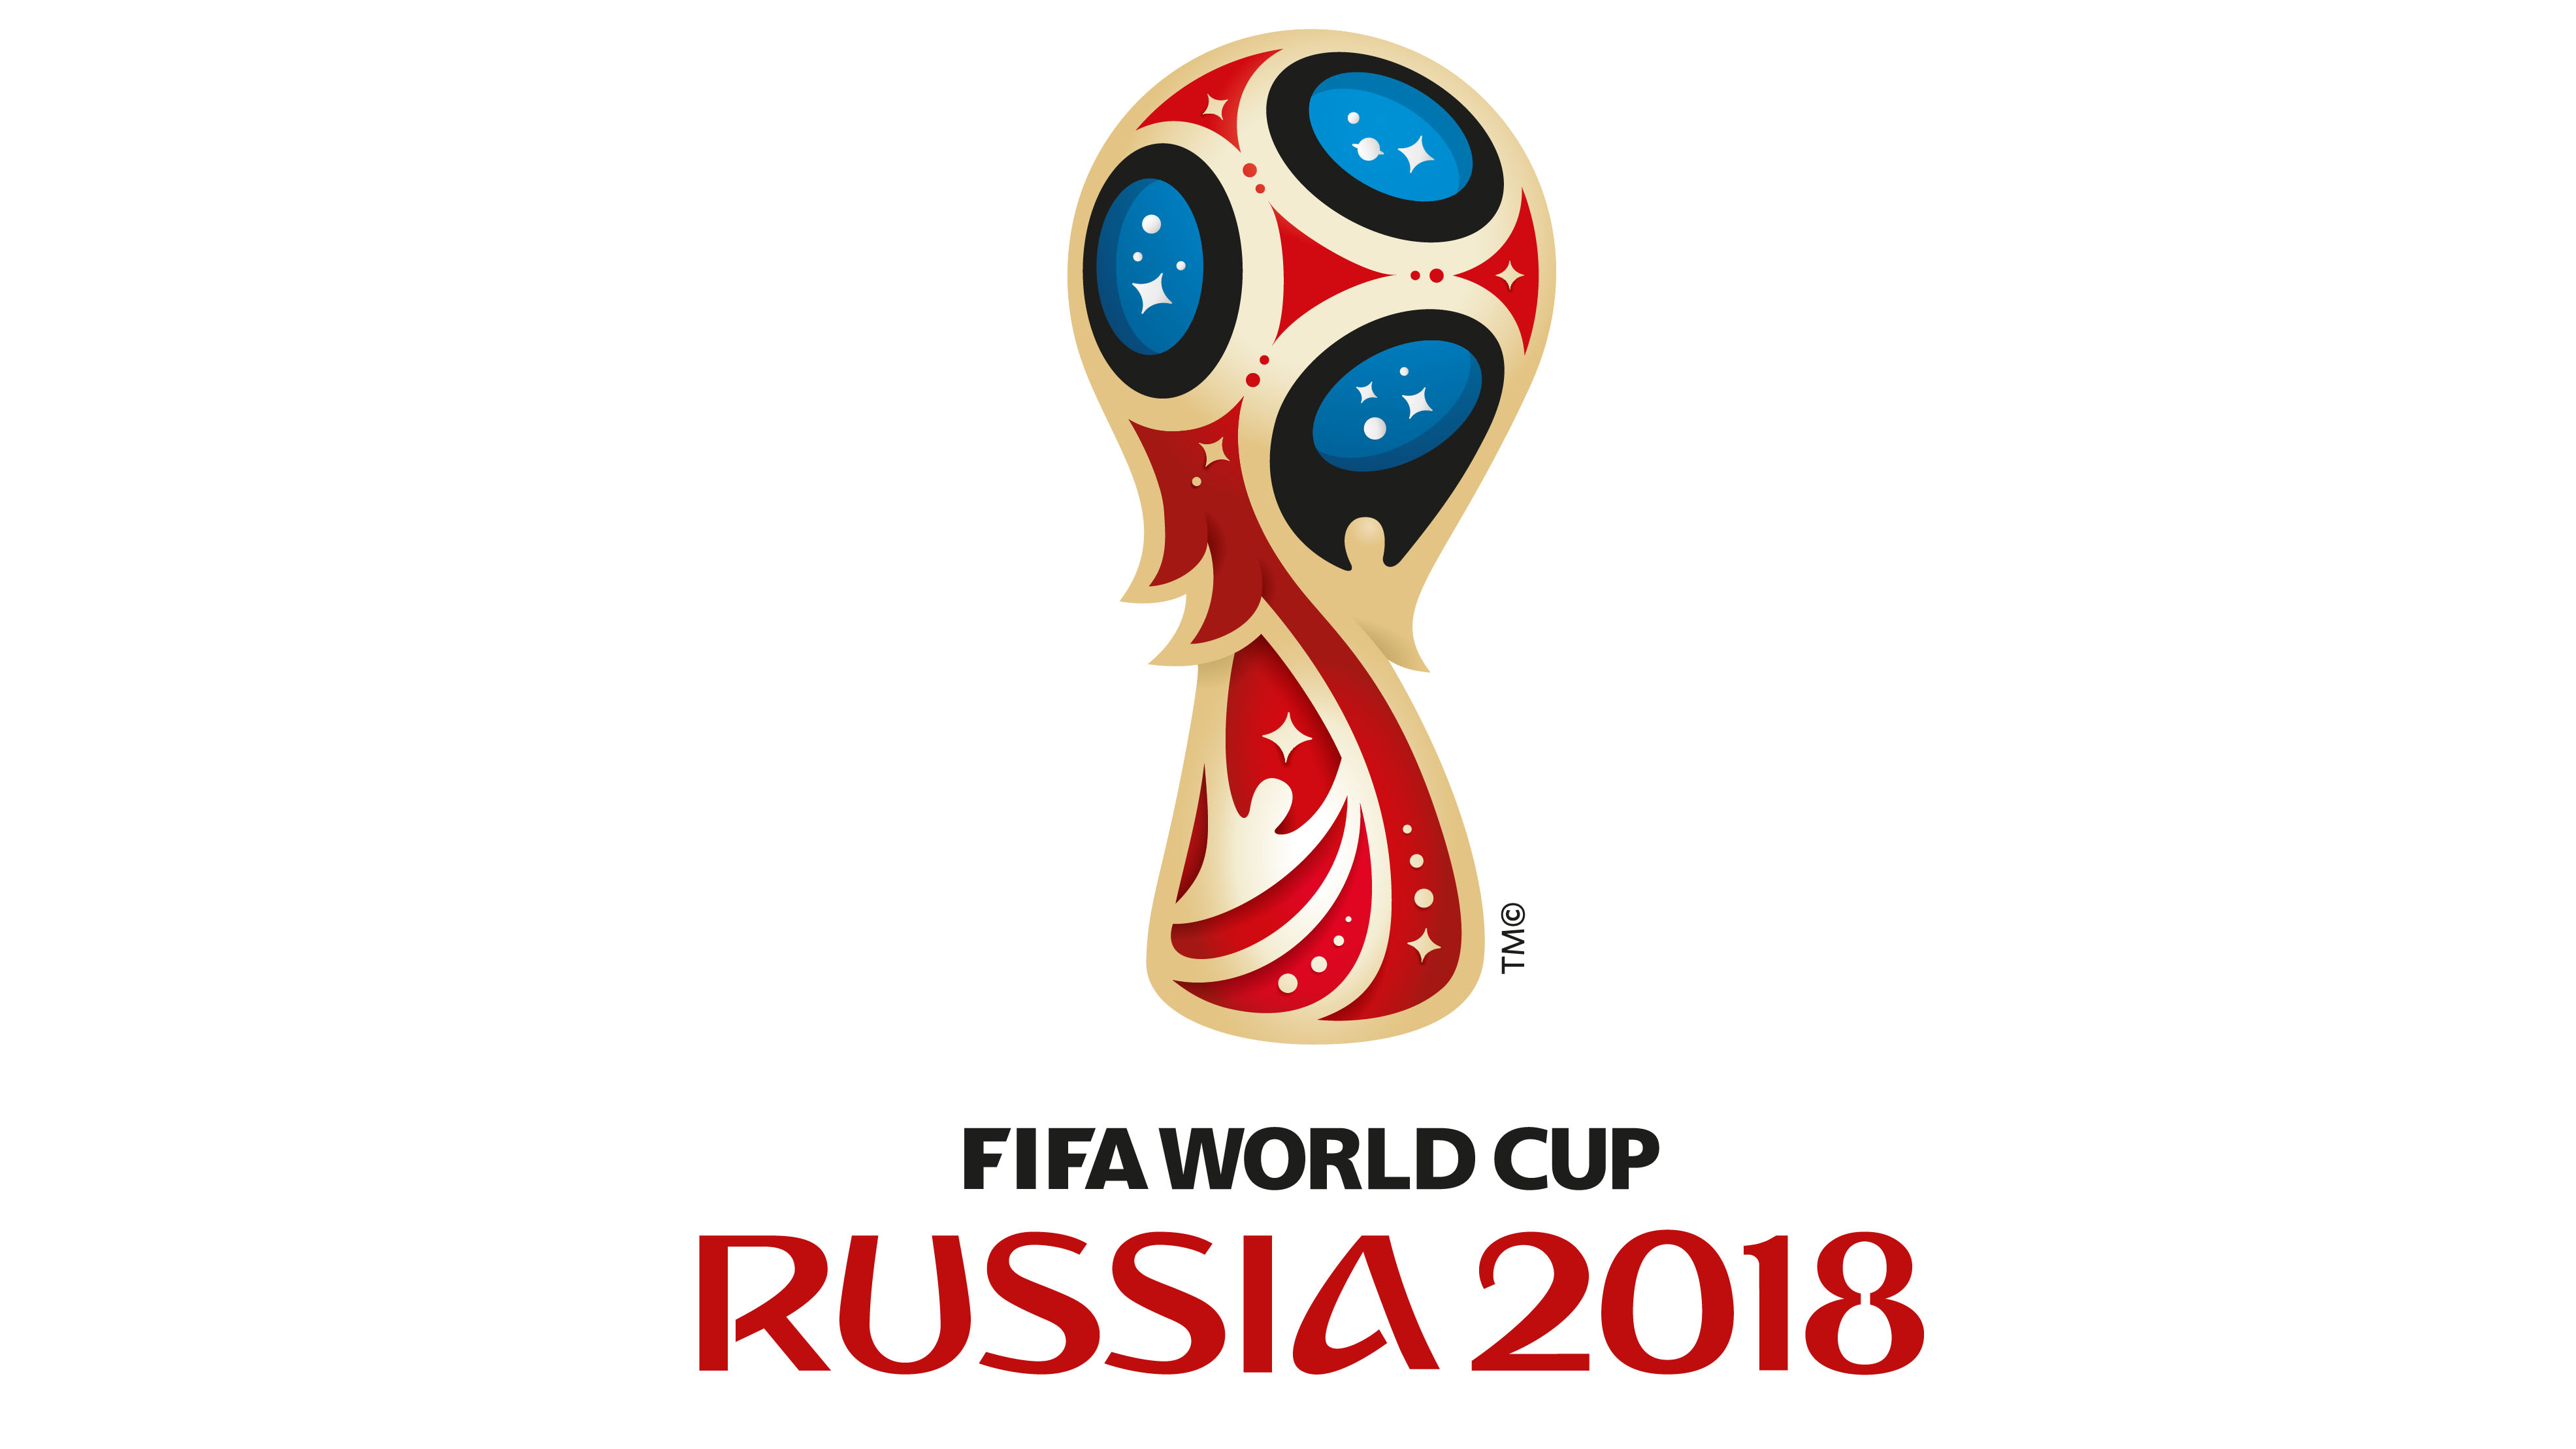 Fifa World Cup 2018 Wallpaper: 2018 FIFA World Cup Russia, HD Sports, 4k Wallpapers